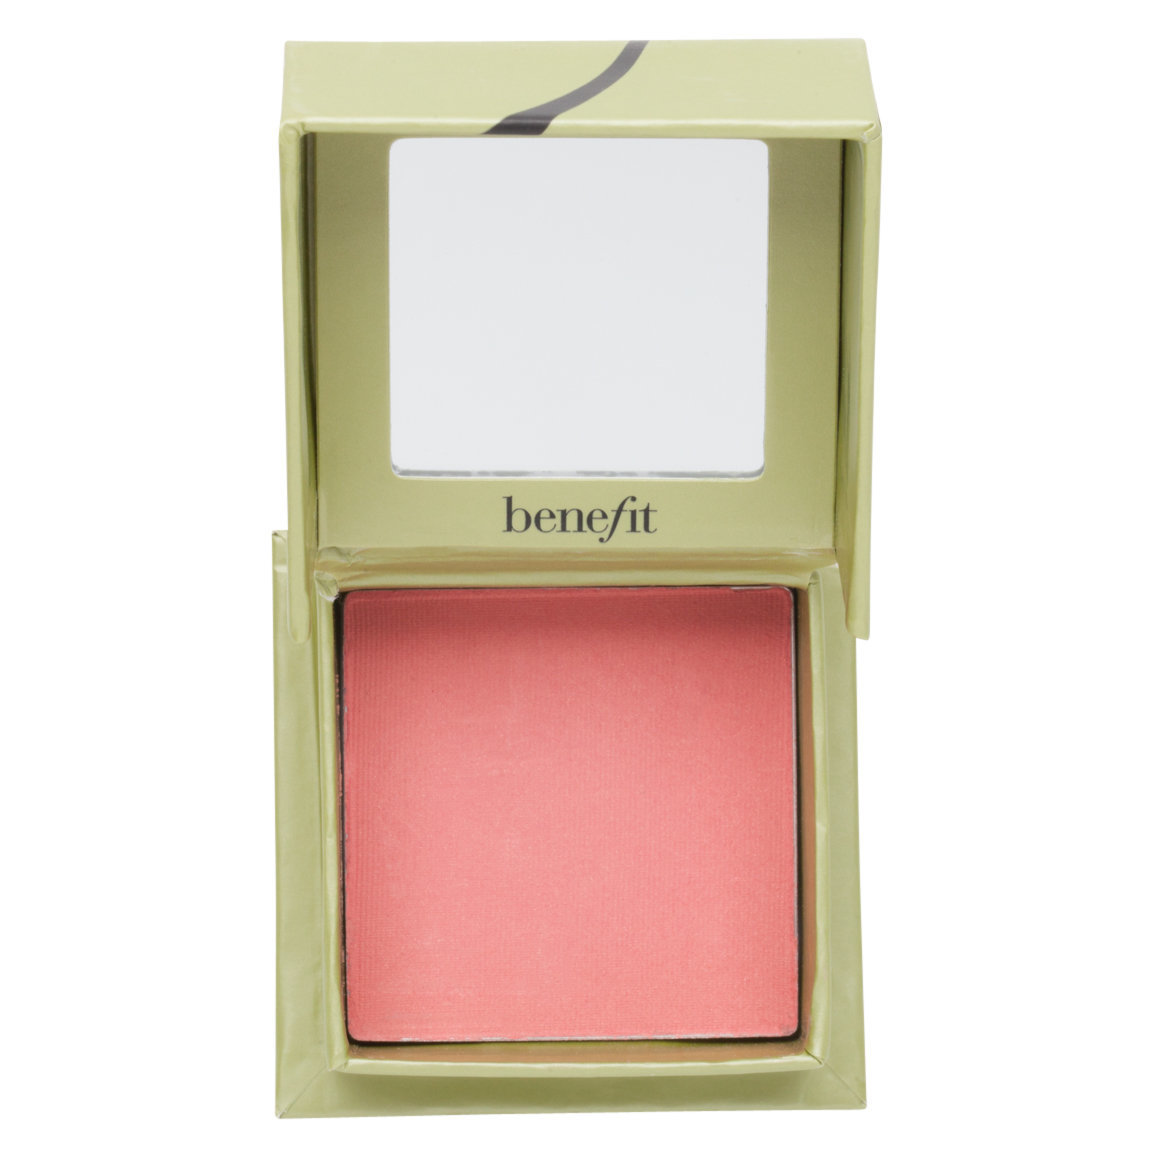 Benefit Cosmetics Dandelion Brightening Finishing Face Powder Mini product swatch.